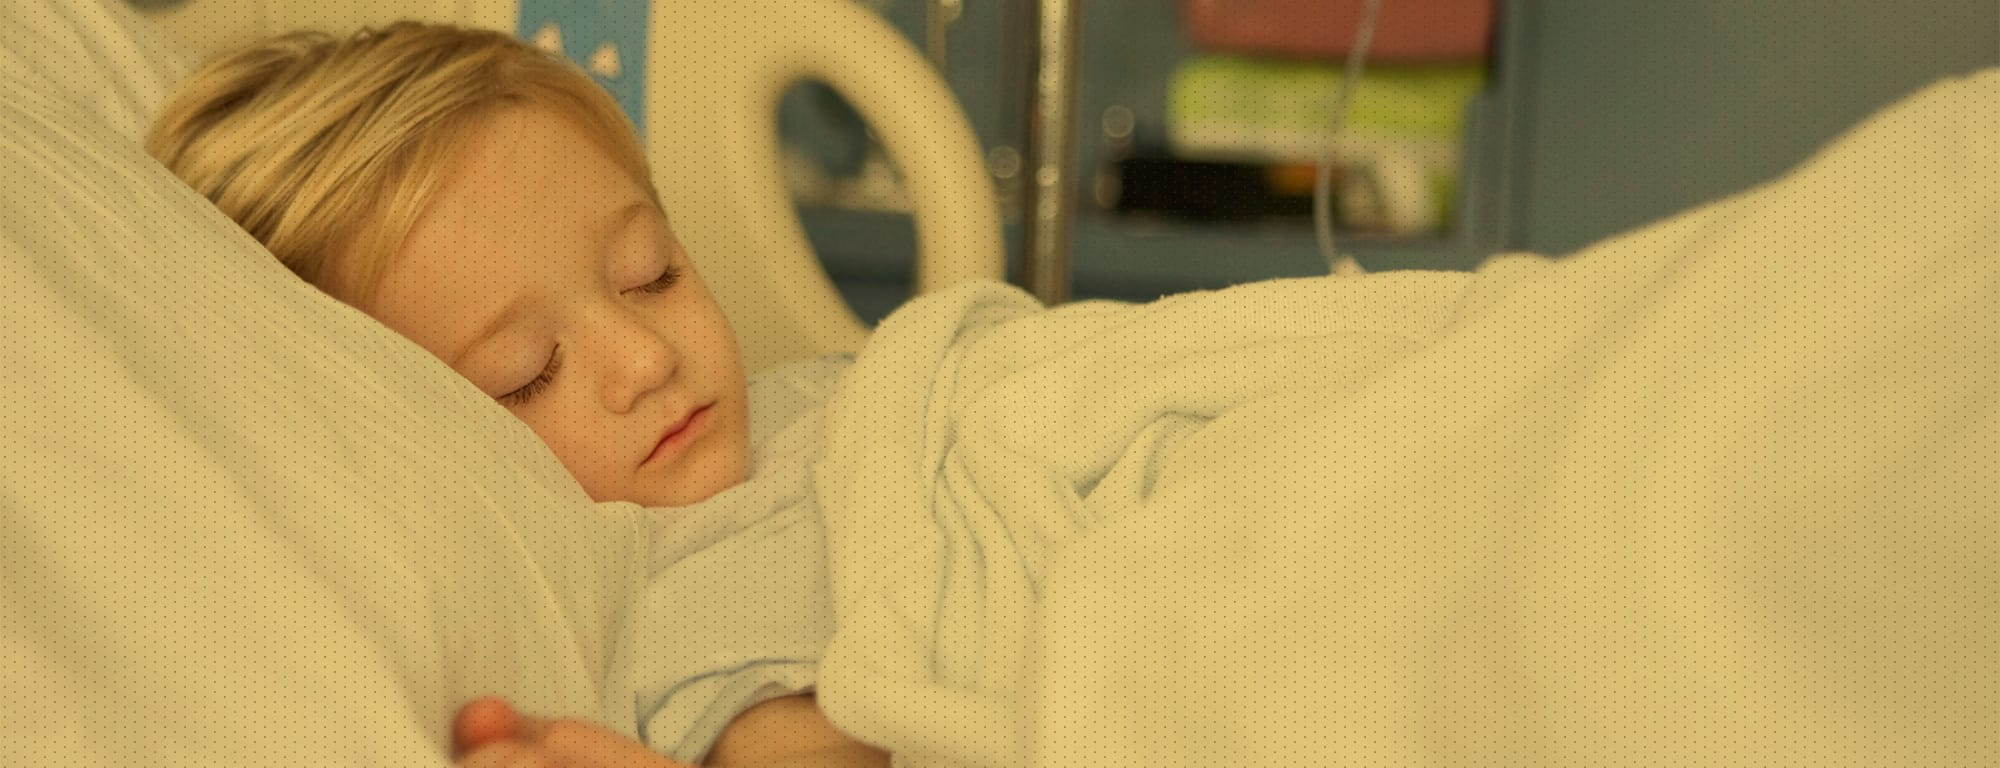 Young girl resting in hospital bed